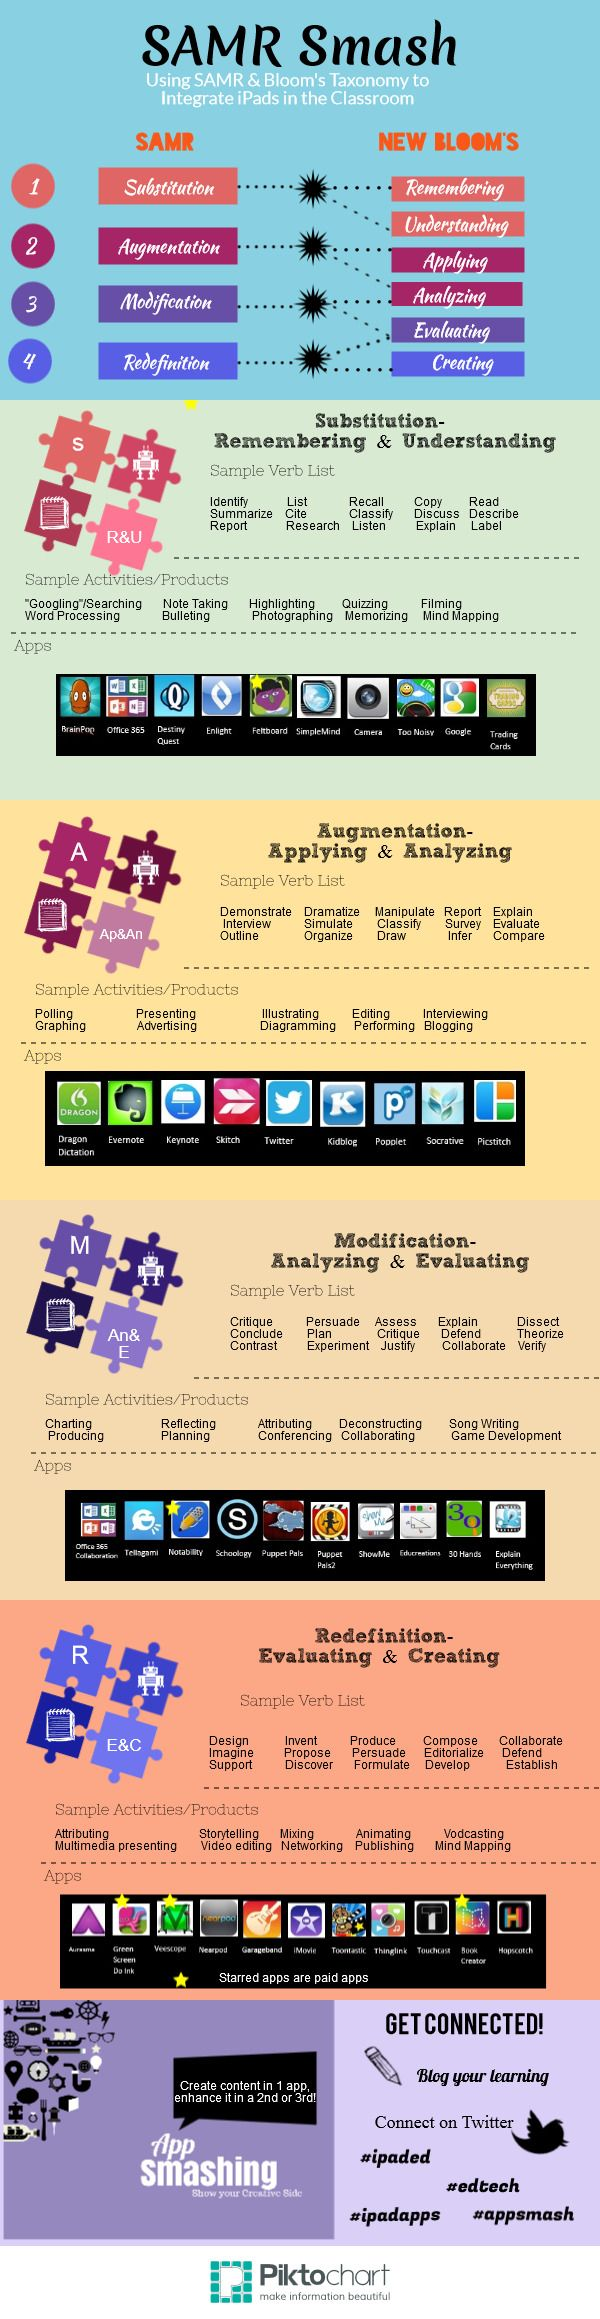 Here is a new wonderful interactive SAMR visual that uses Bloom's taxonomy.